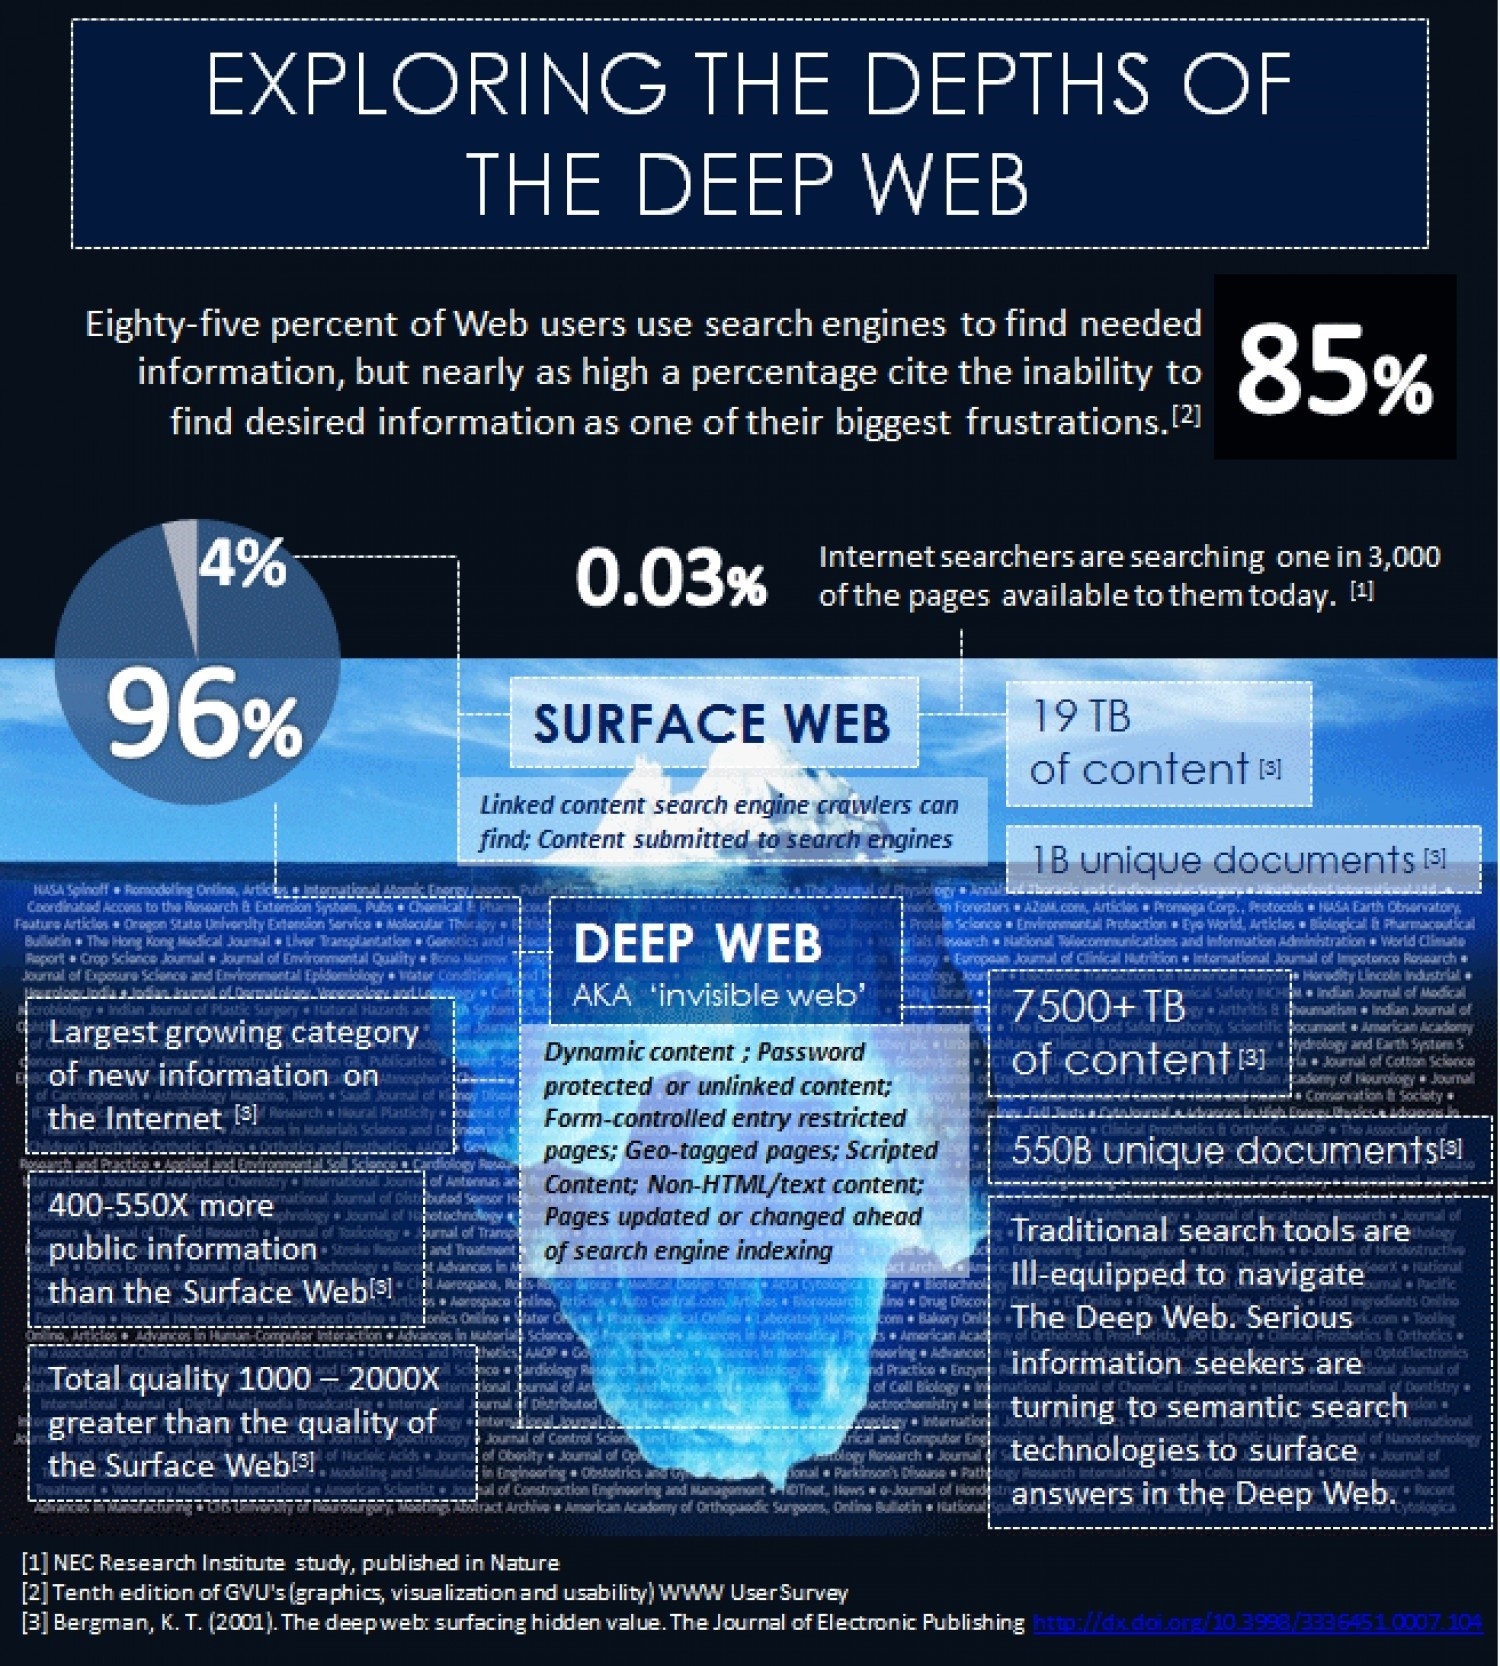 Exploring the depths of the deep web